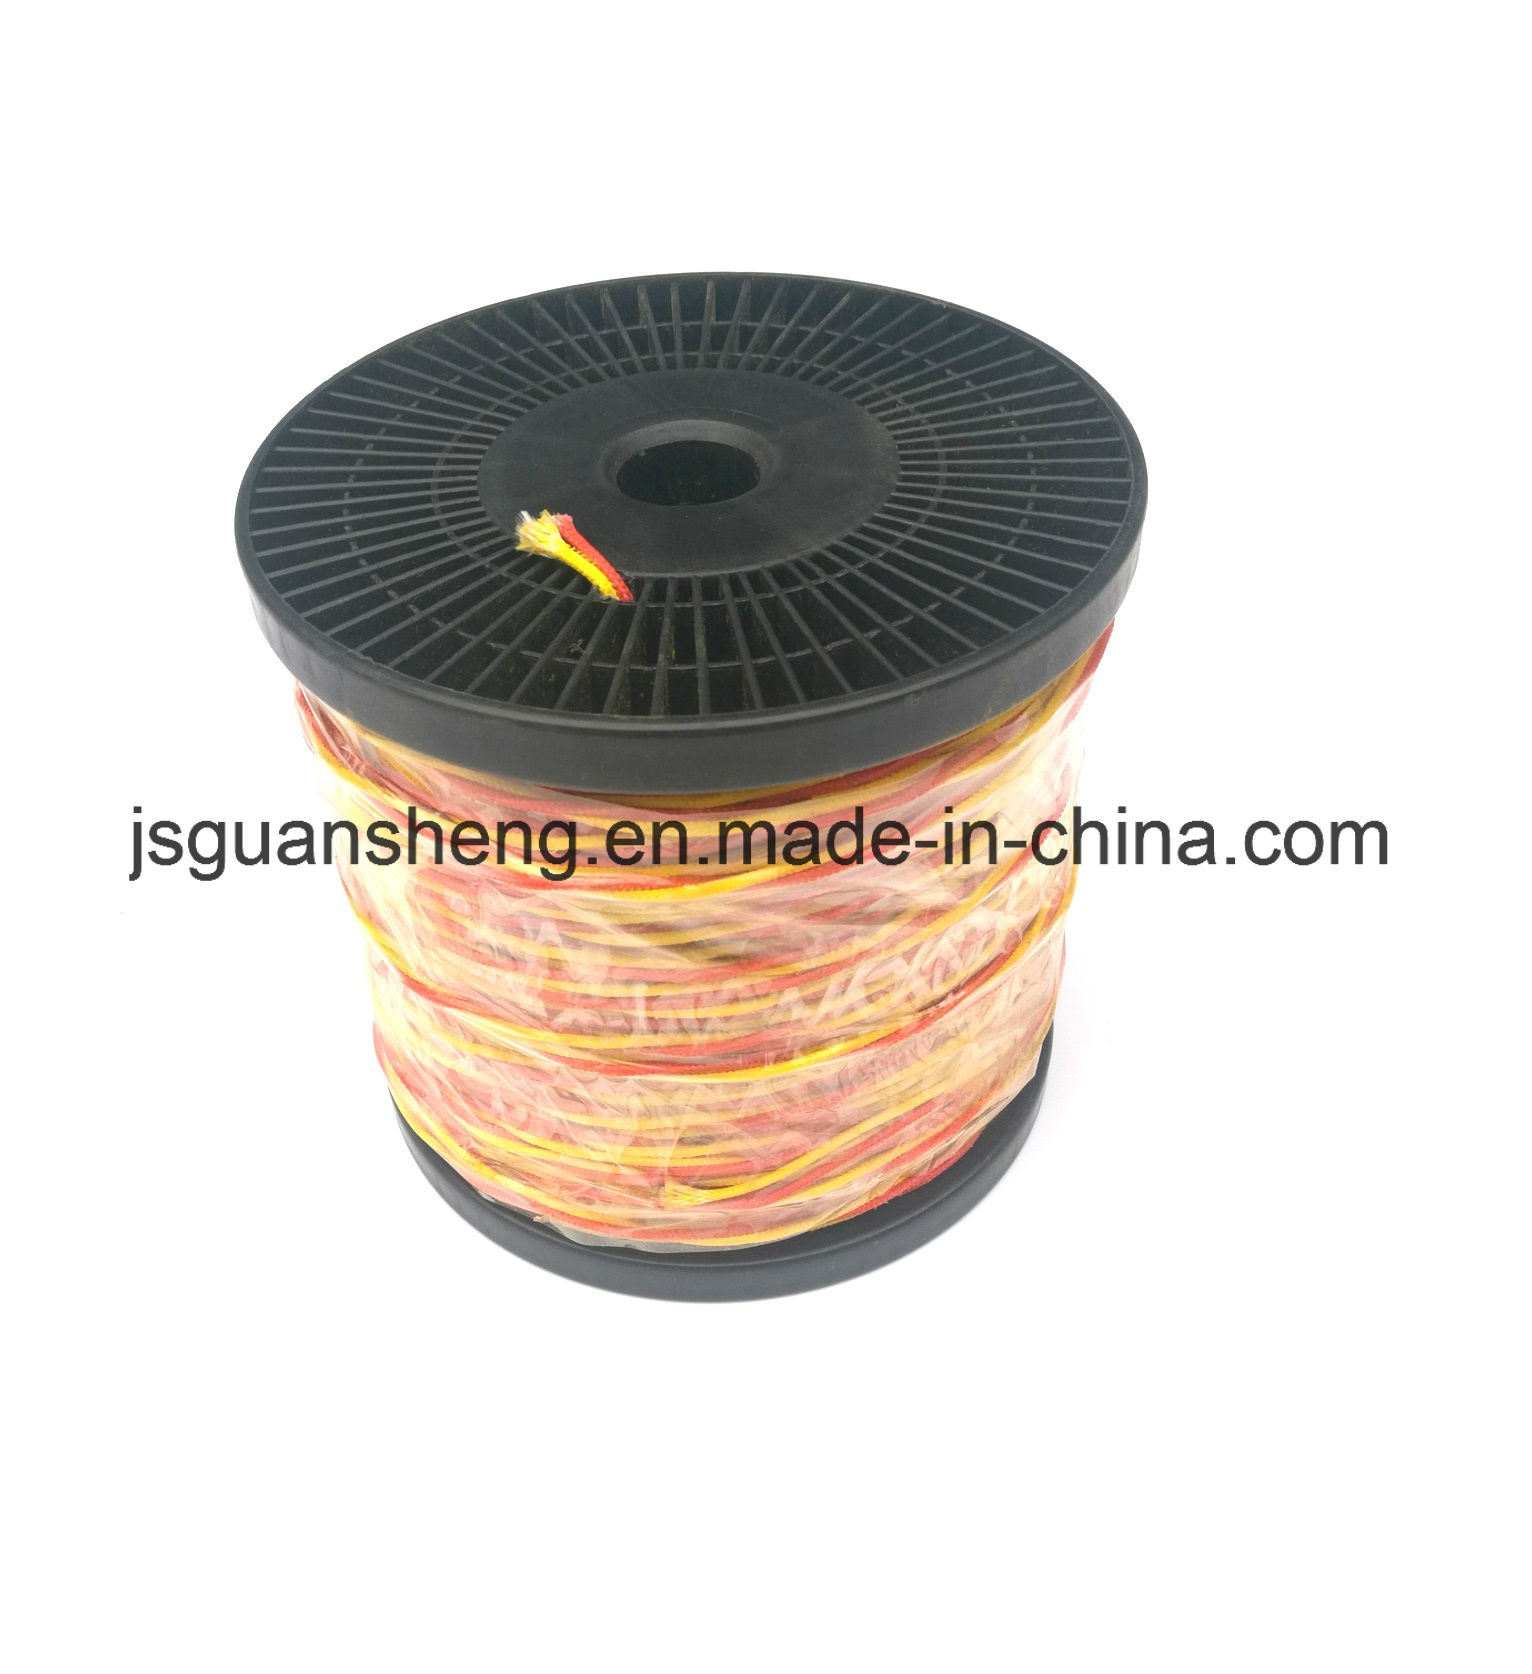 China Type K Thermocouple Wires Red Yellow for Pwht - China ...